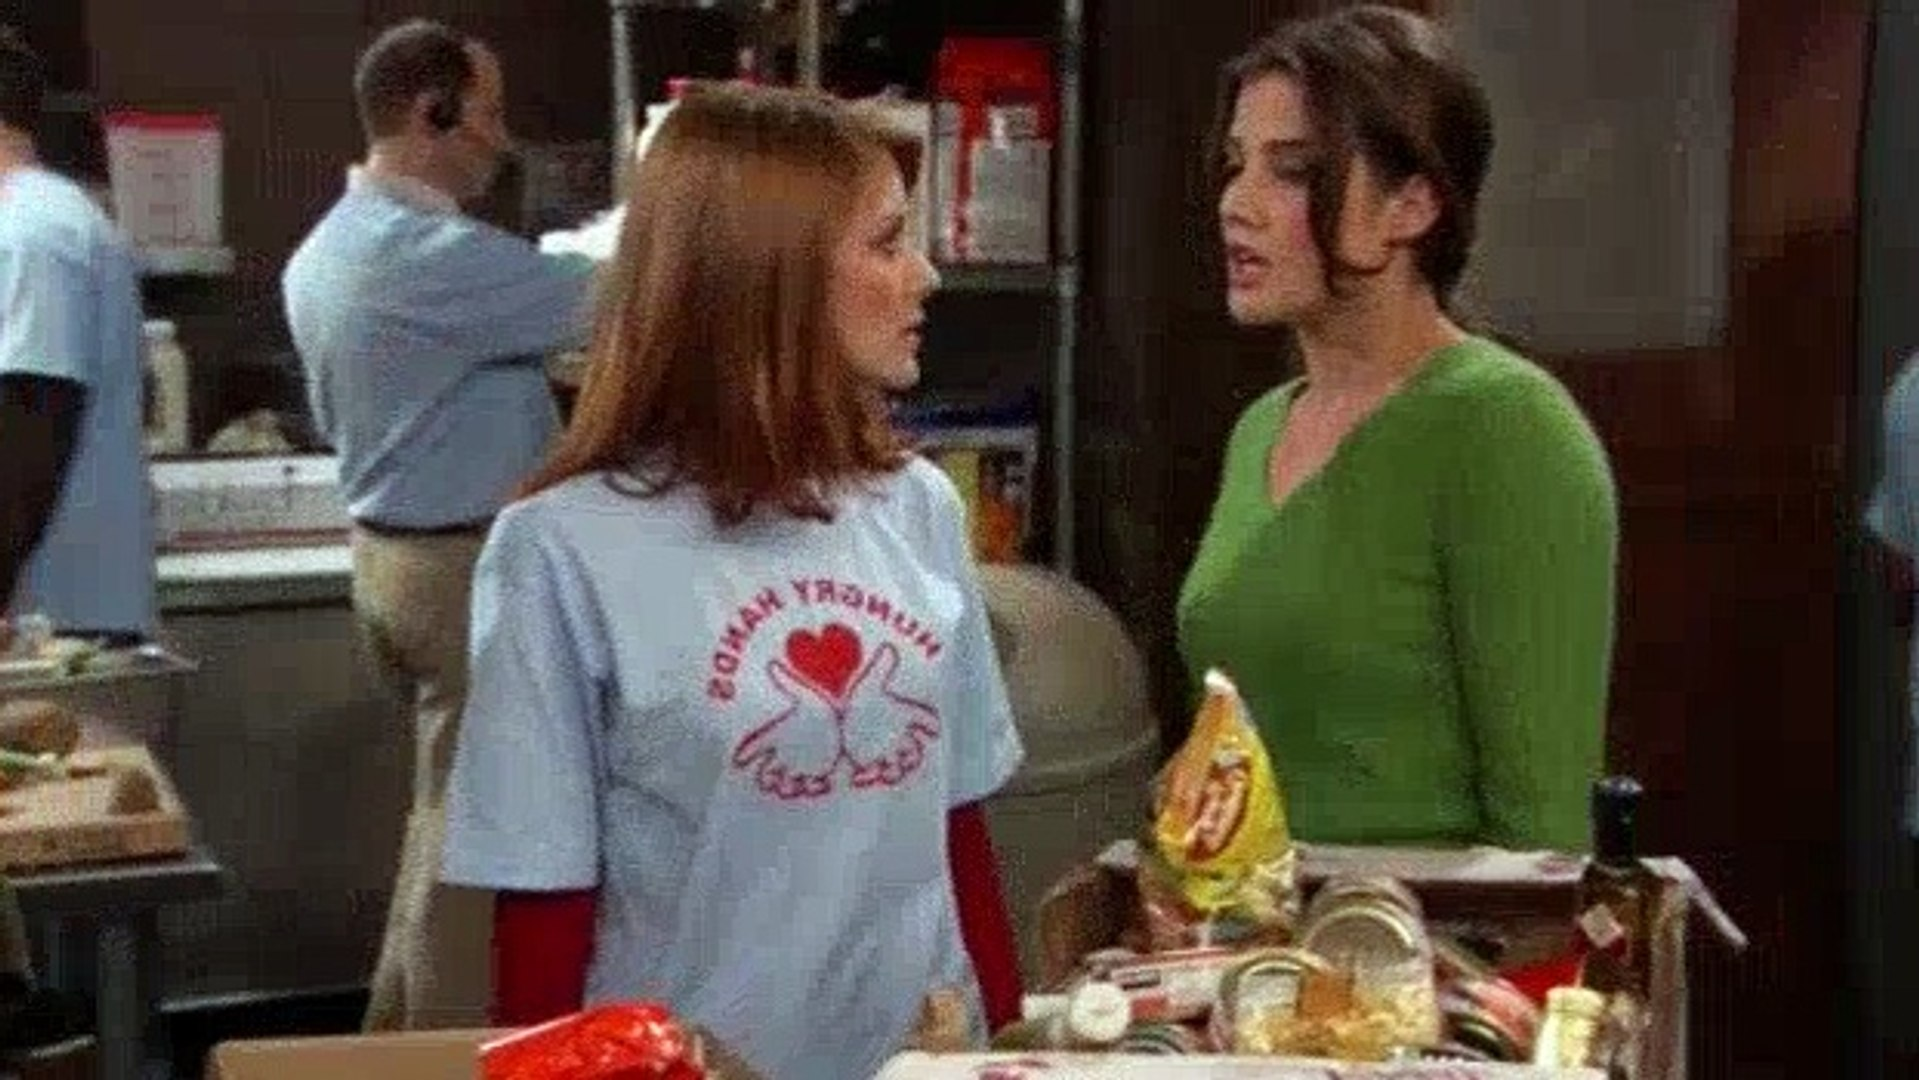 How I Met Your Mother S01e09 Belly Full Of Turkey Video Dailymotion